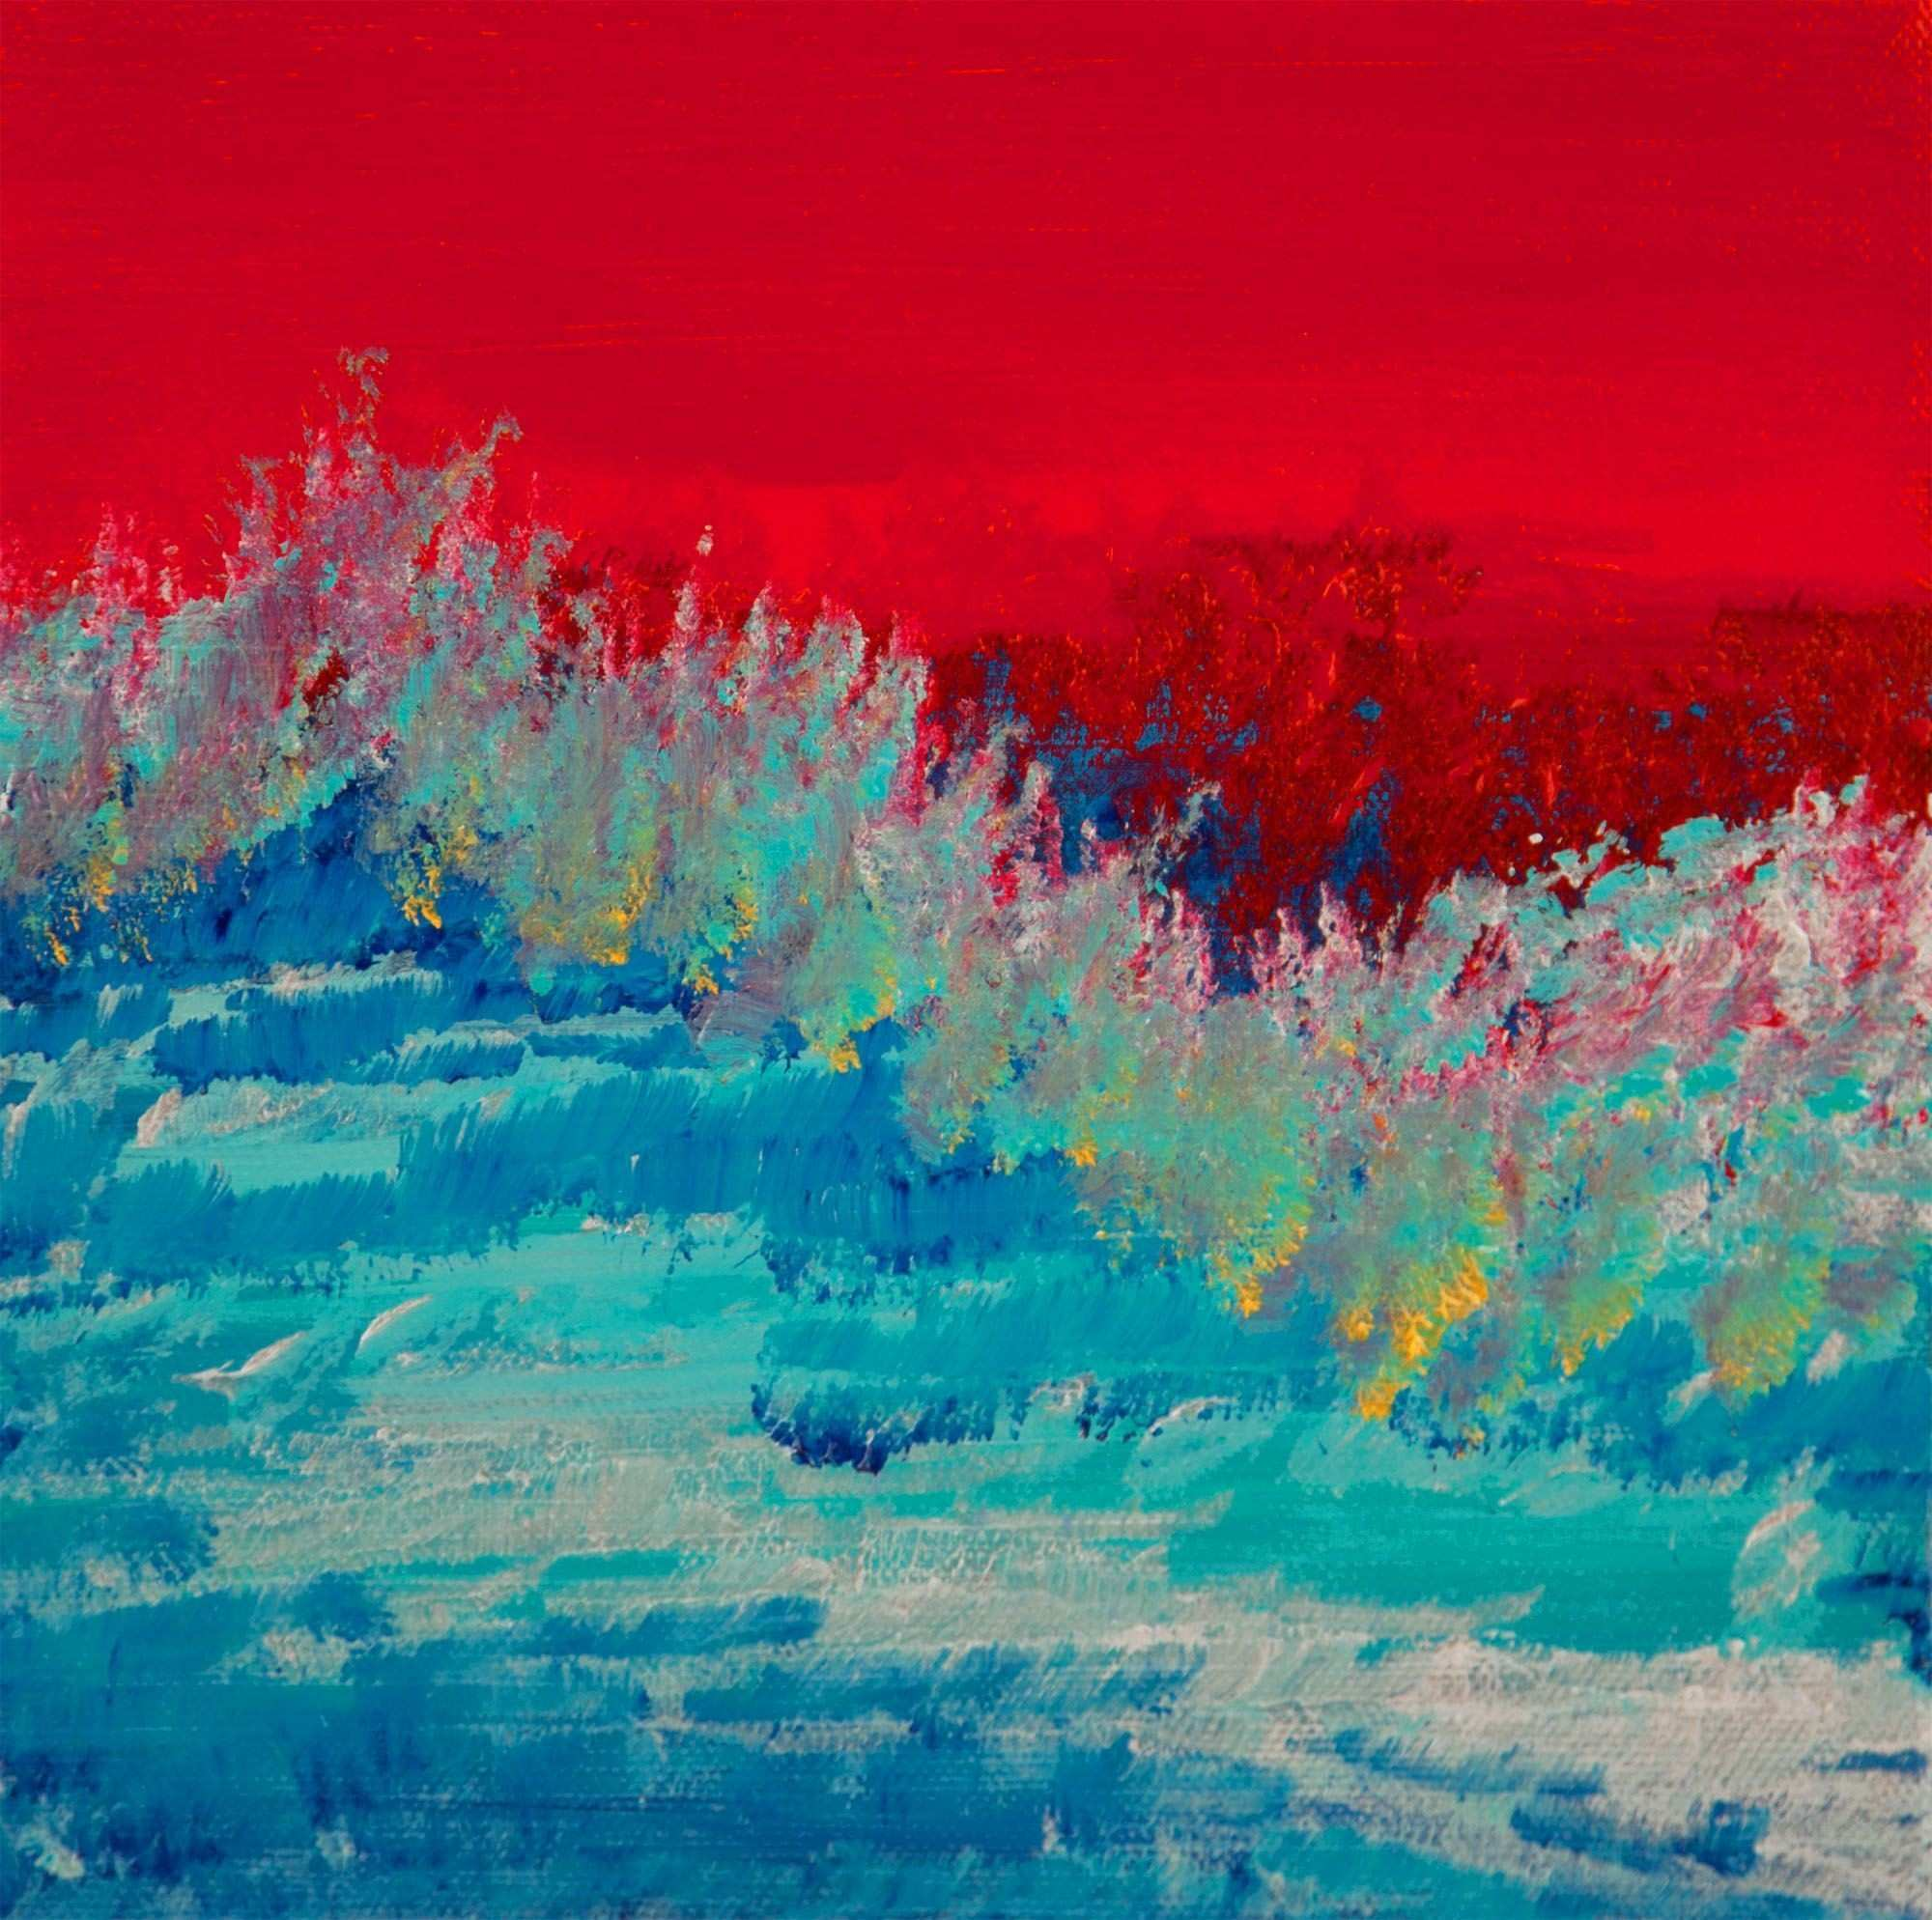 Views of Nature 25 8x8 Inches Sold